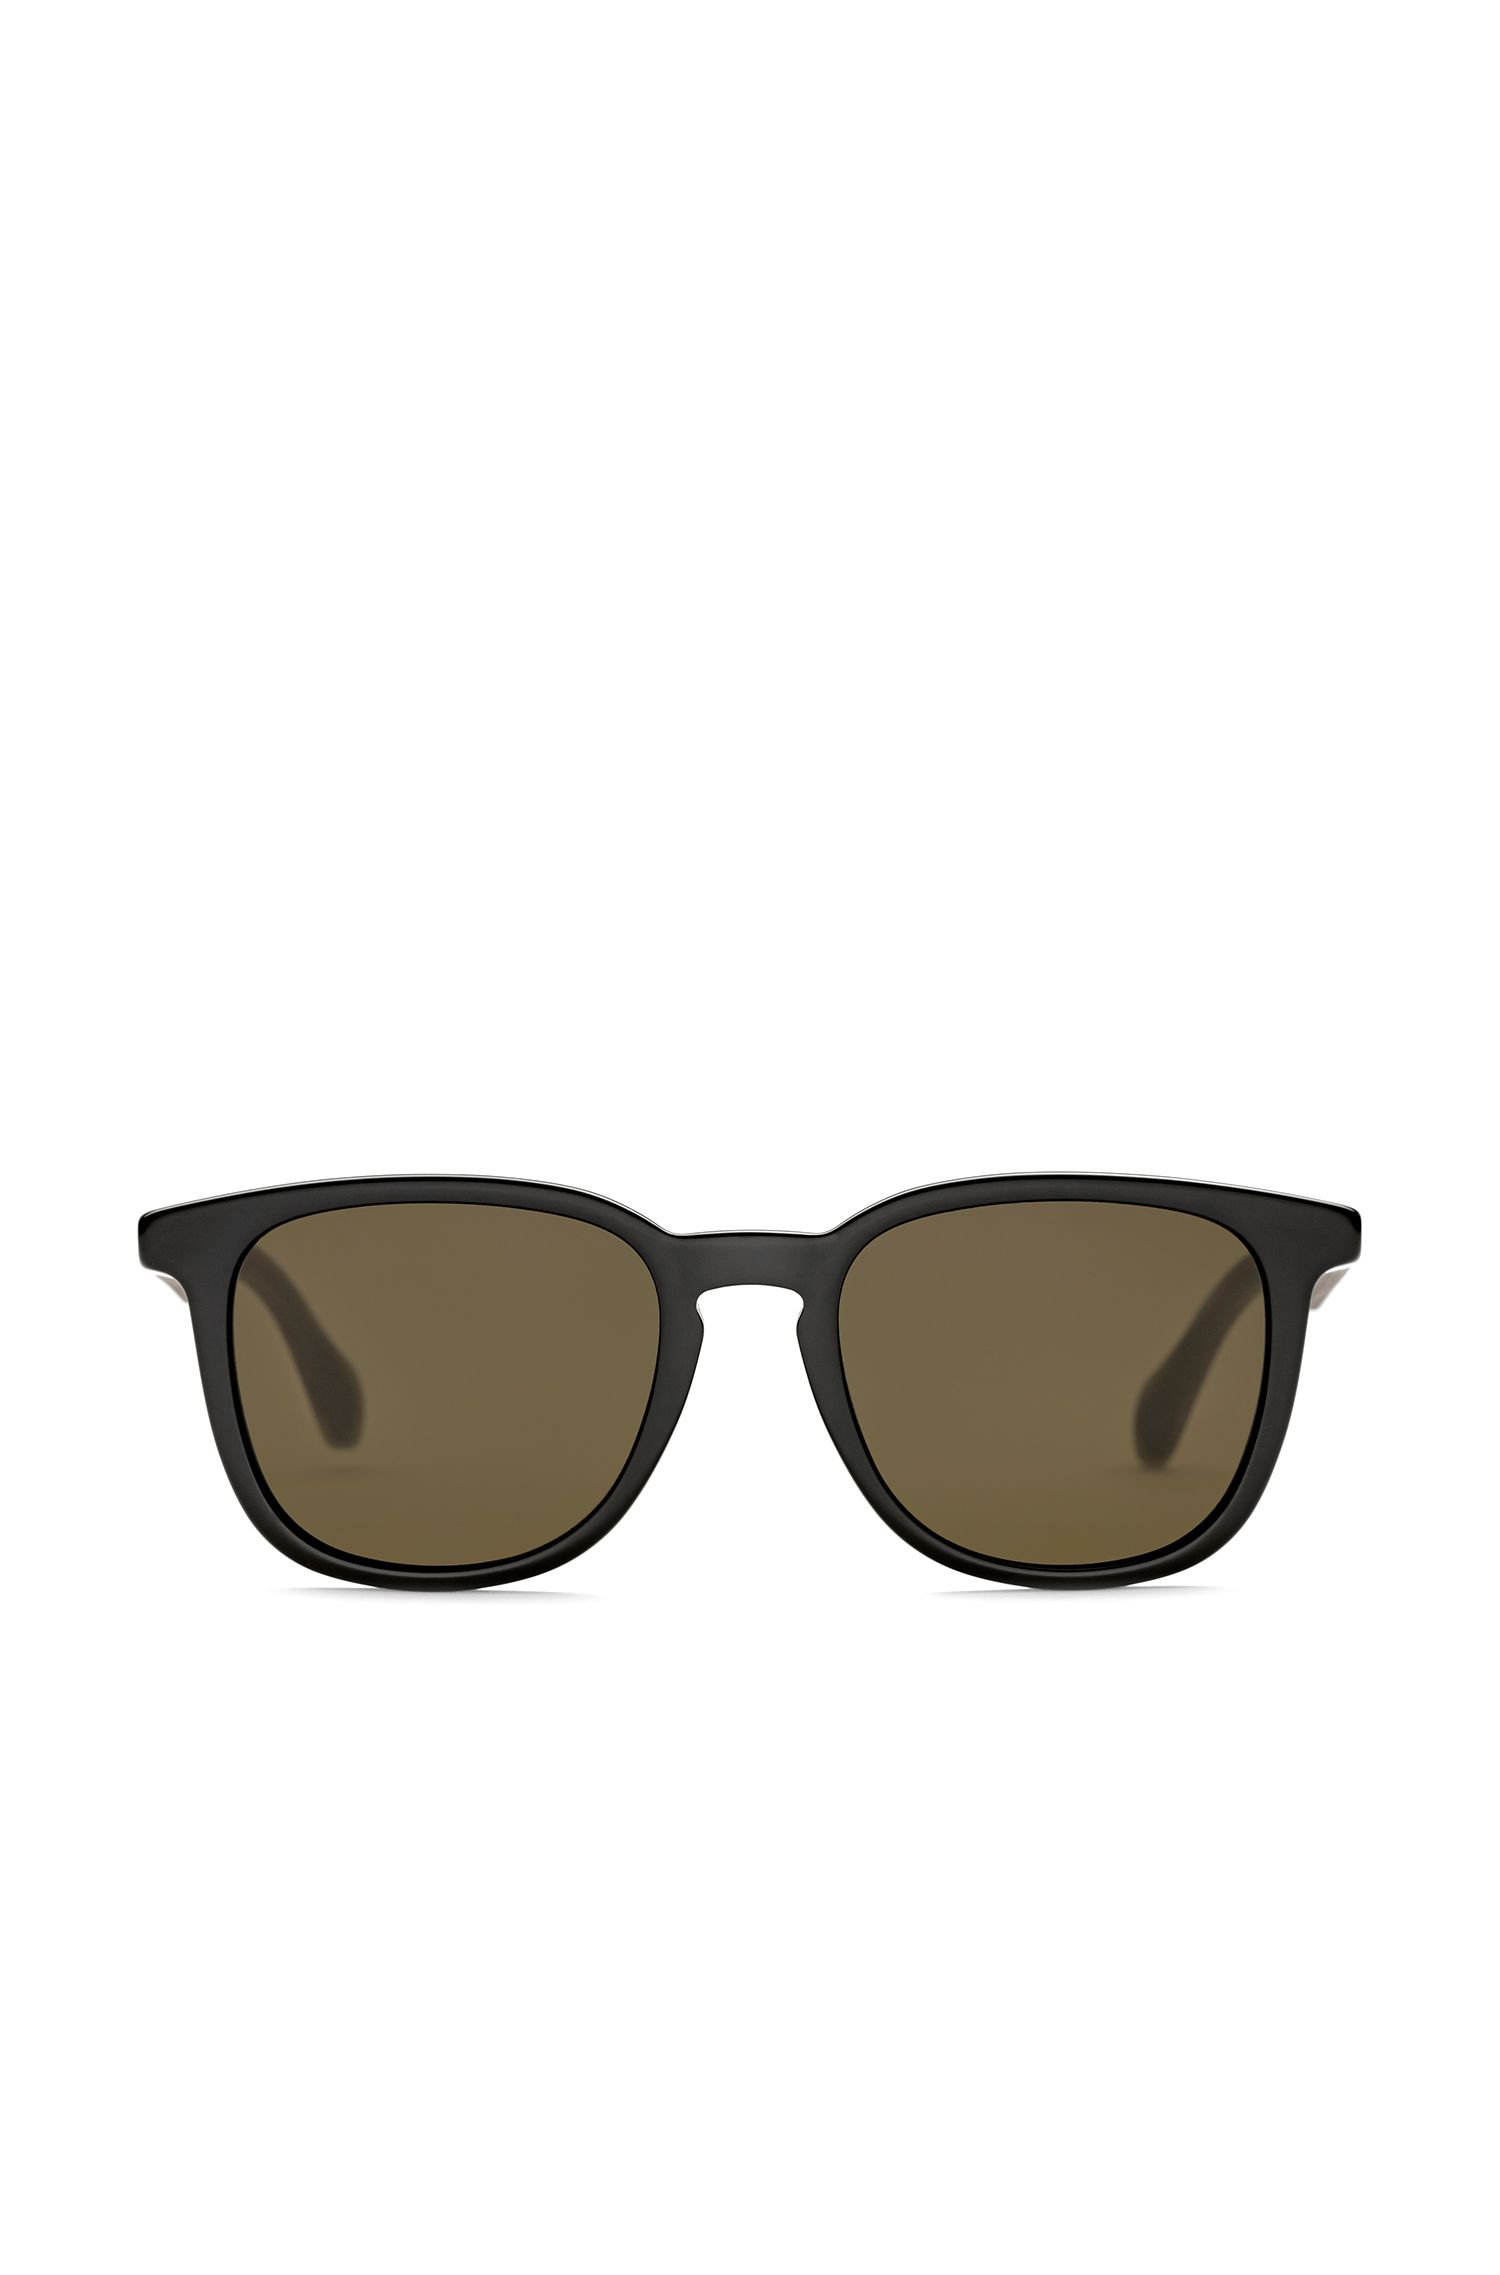 Acetate sunglasses with wooden temples